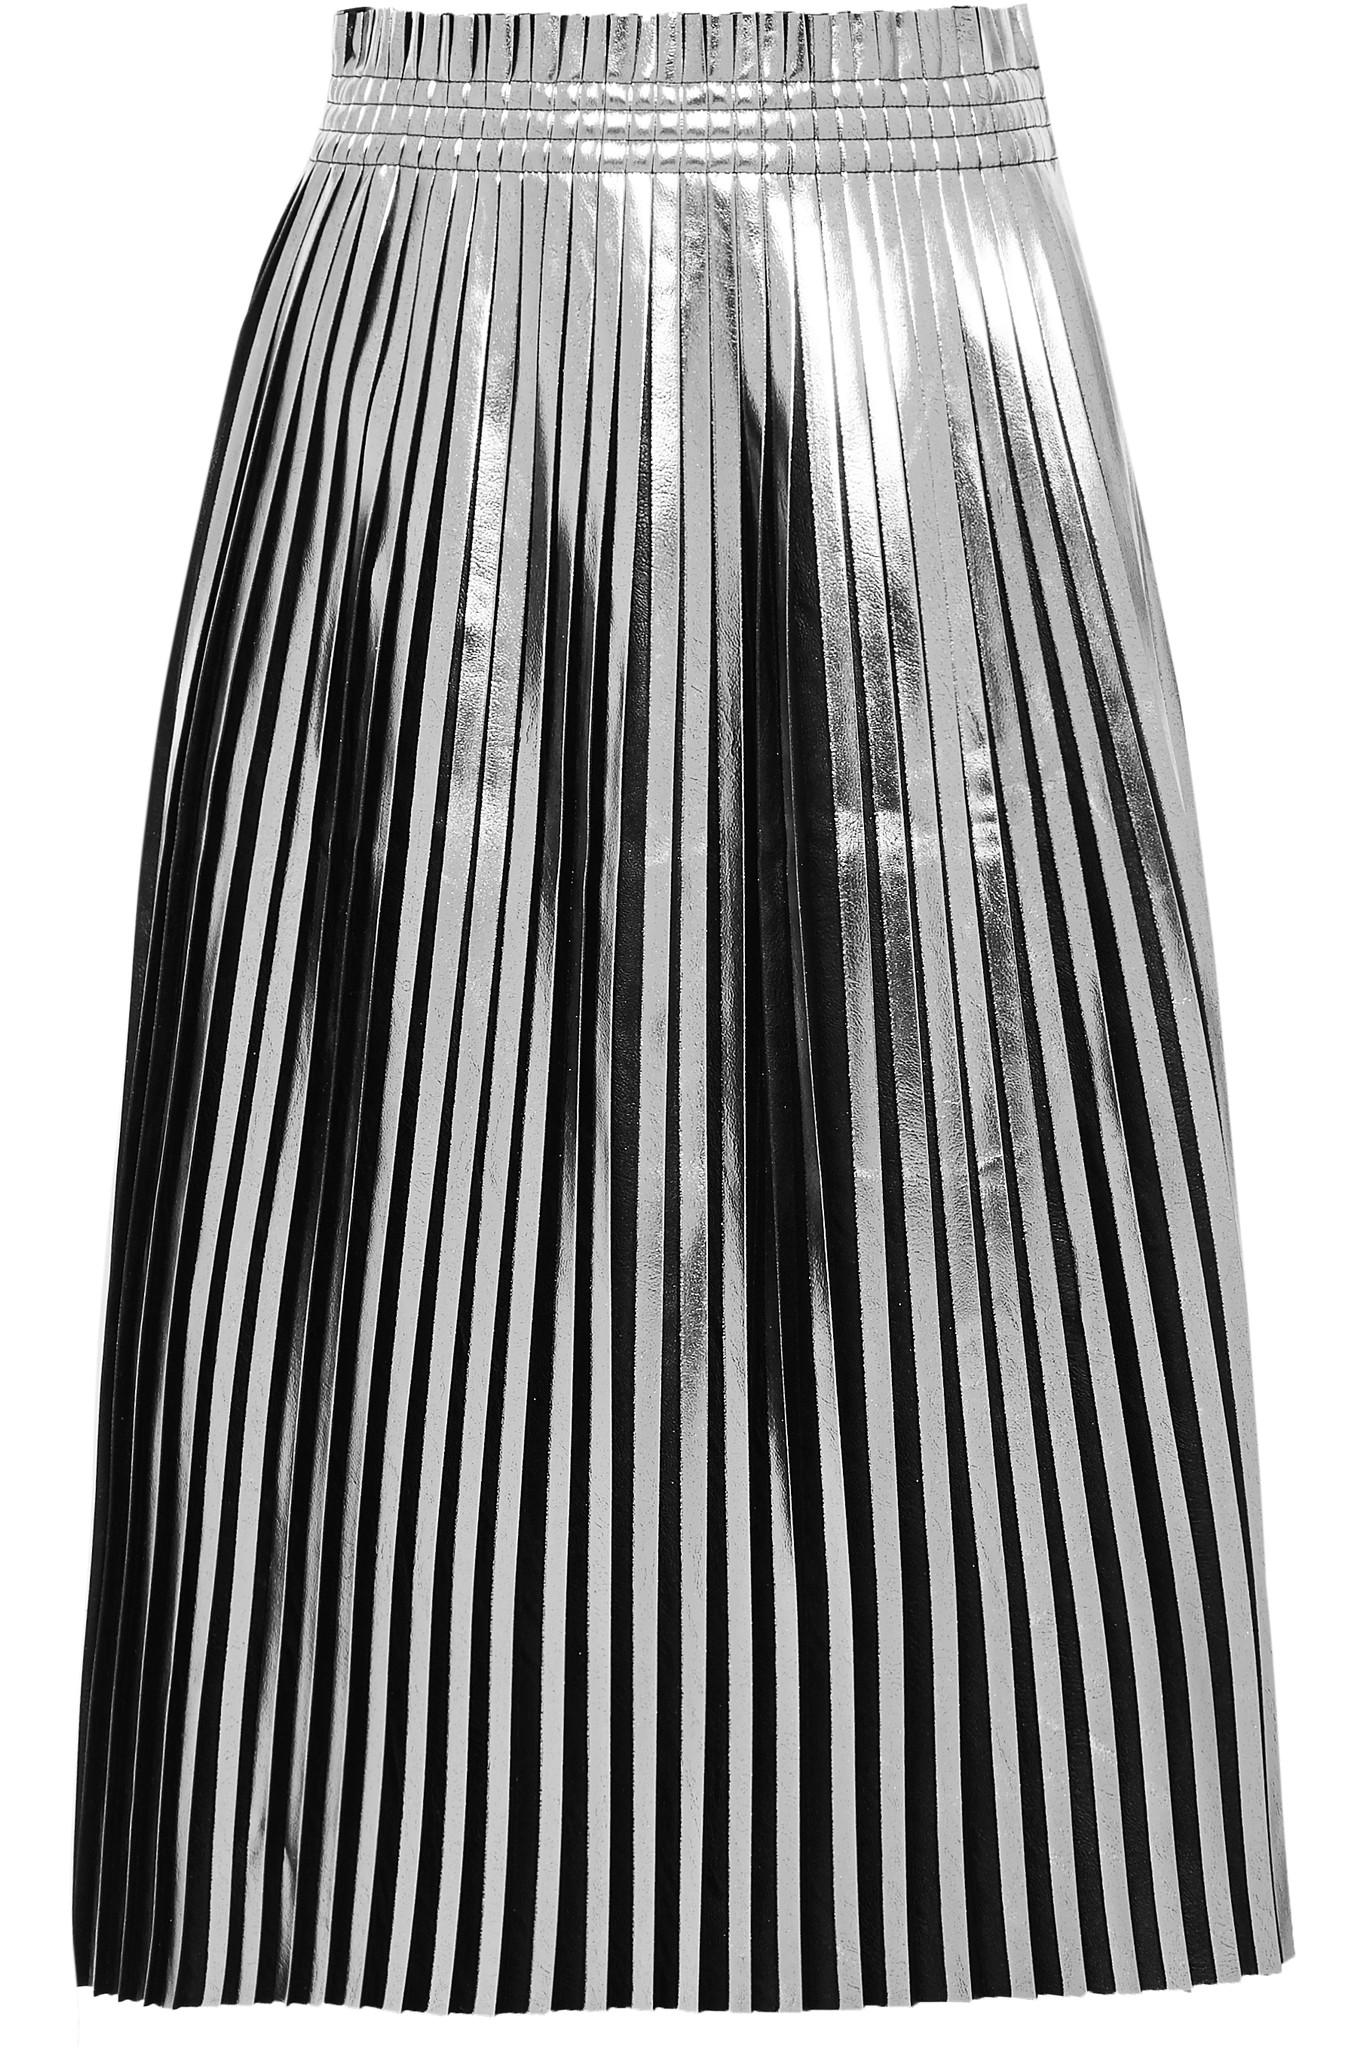 Buy Cheap The Cheapest pleated metallic skirt - Black Maison Martin Margiela Clearance Get Authentic 58BbpA3svA